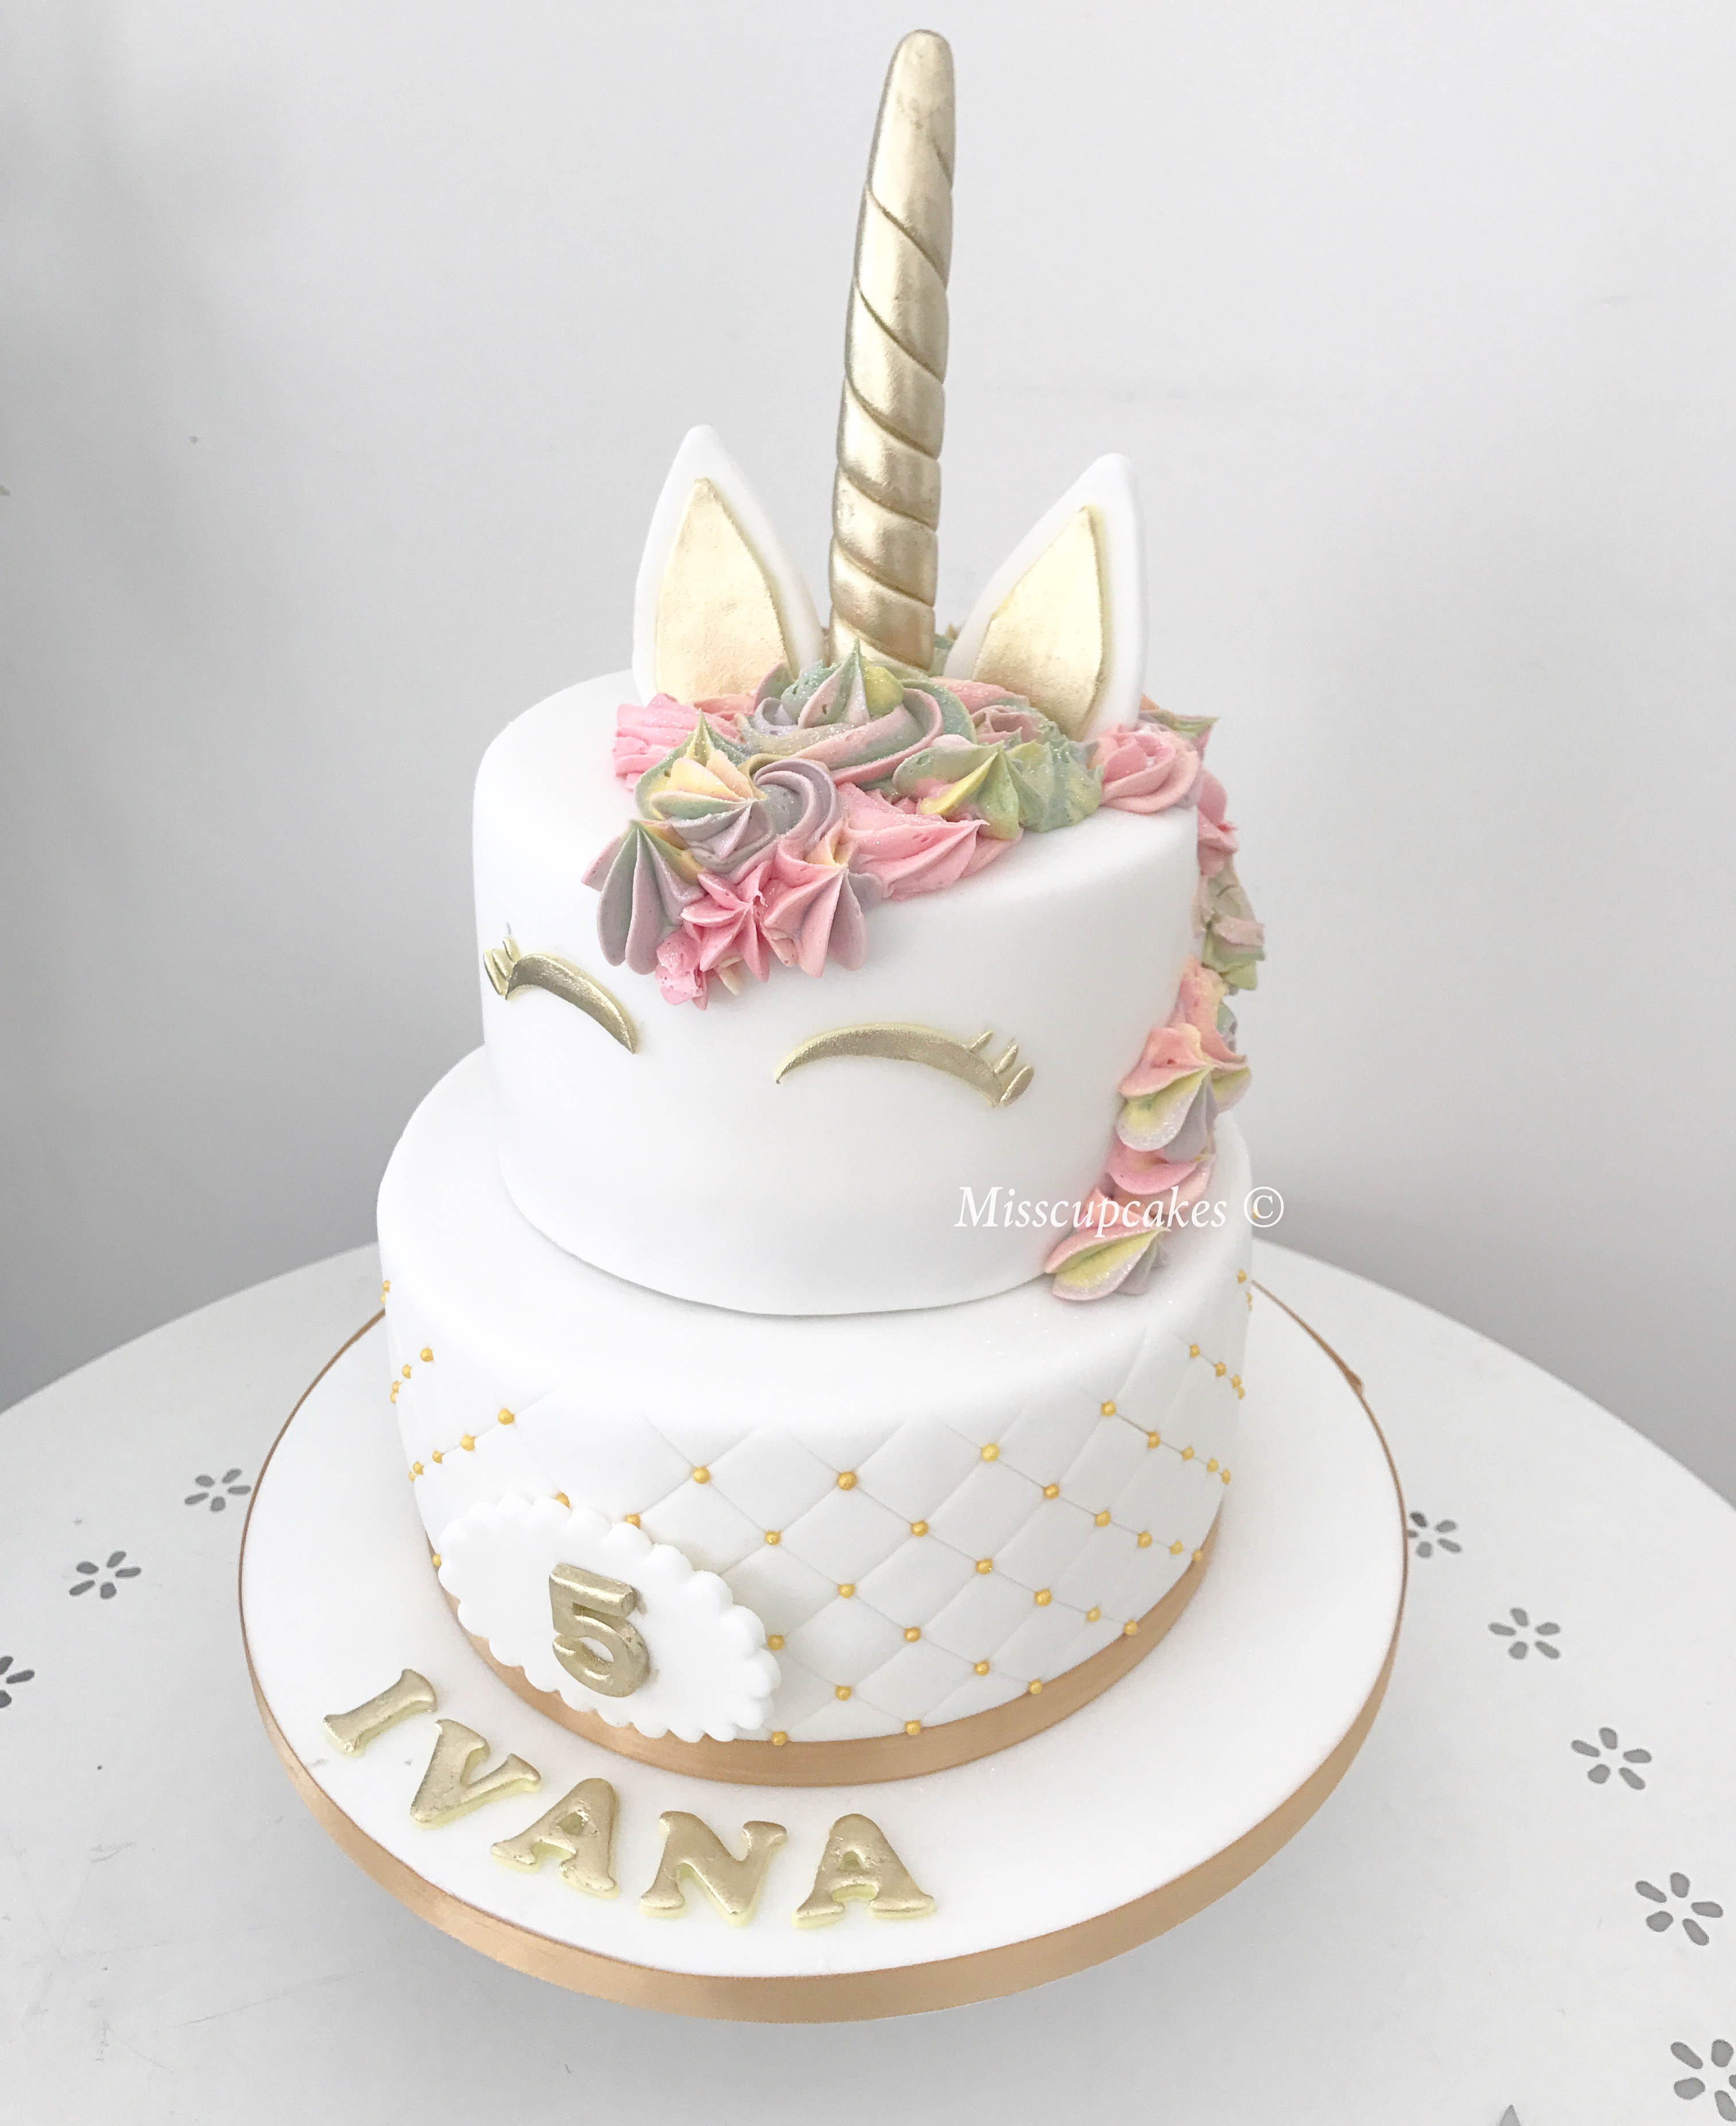 Miss Cupcakes Blog Archive 2 Tiered Unicorn Themed